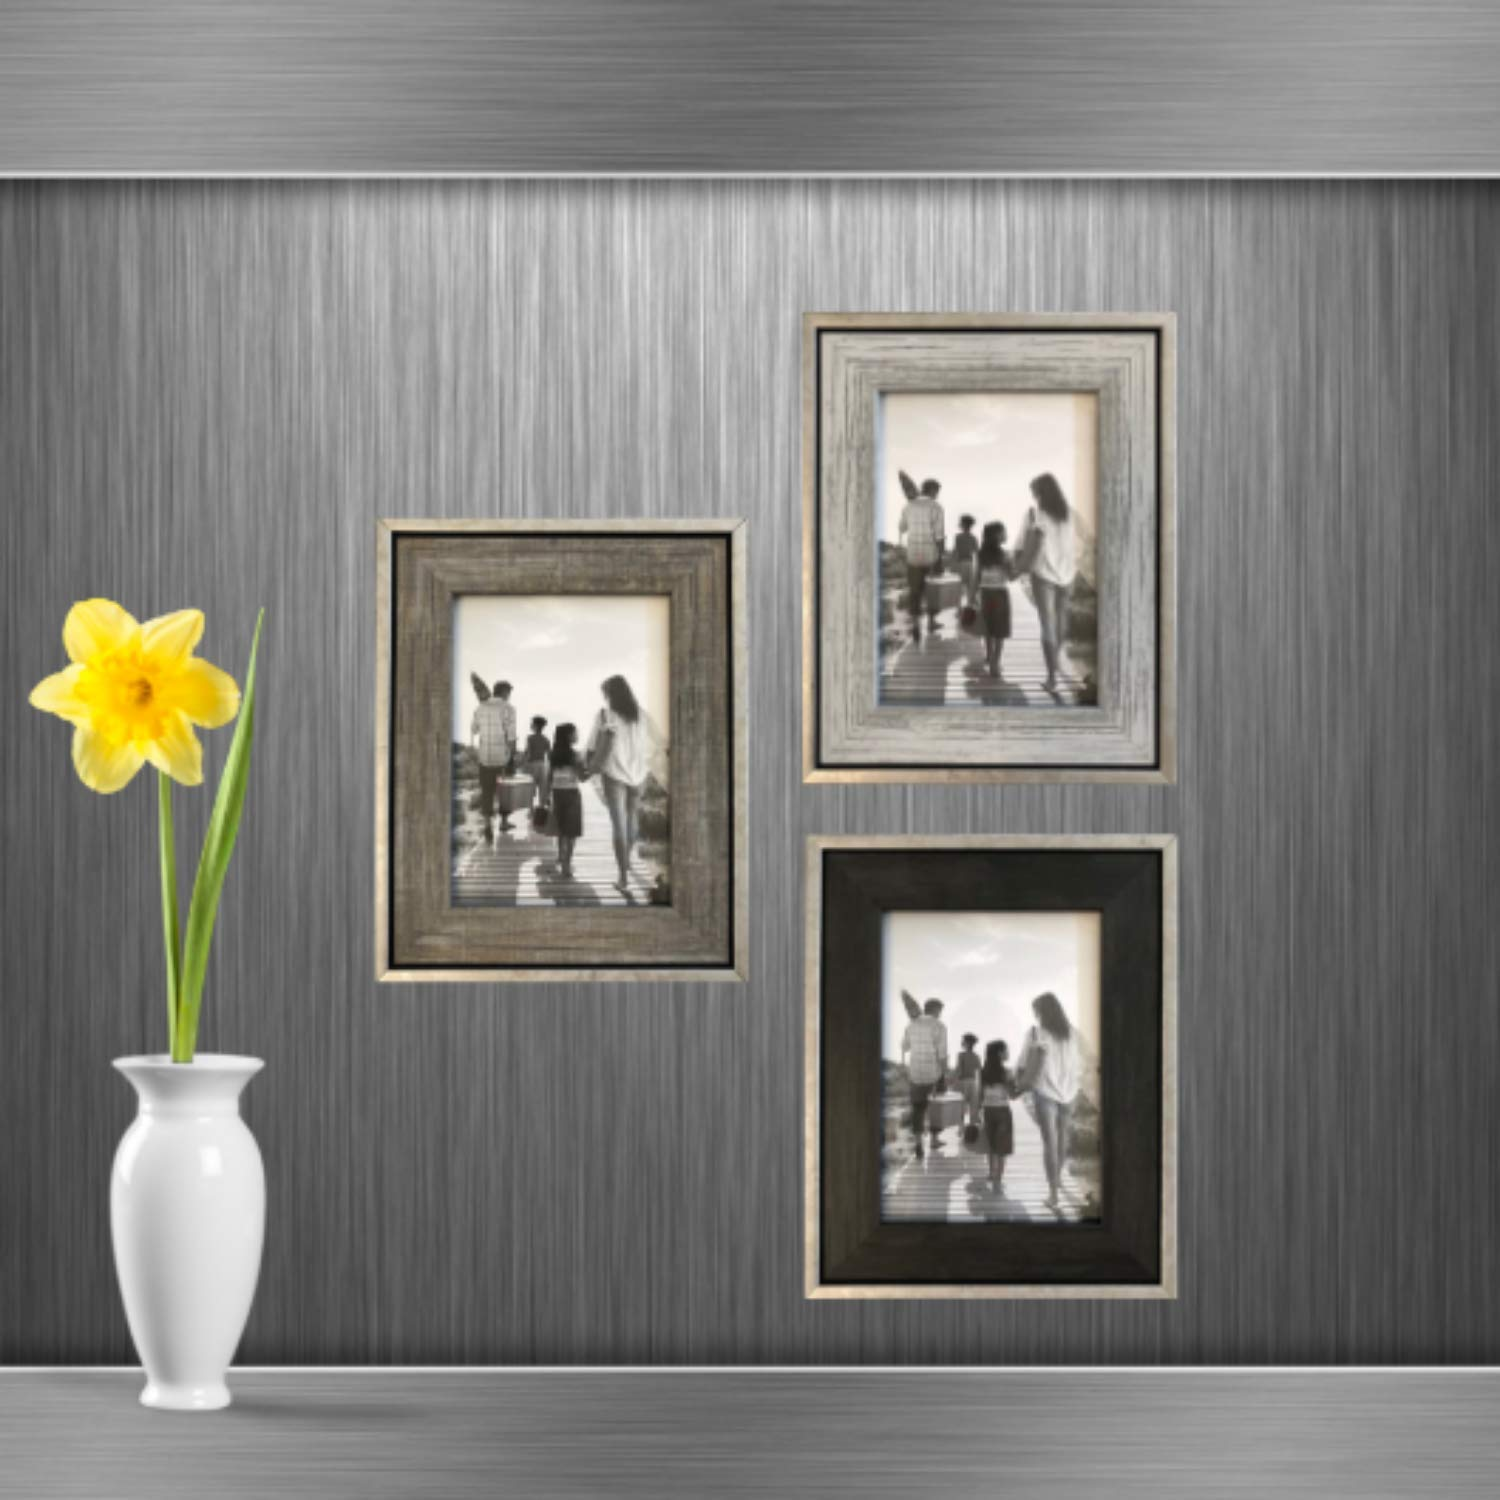 Tasse Verre 5x7 Rustic Frames (3-Pack) - Distressed Farmhouse Industrial Frame - Ready to Hang or Stand - Built-in Easel - Silver Galvanized Metal Look with Wood Insert by Tasse Verre (Image #4)